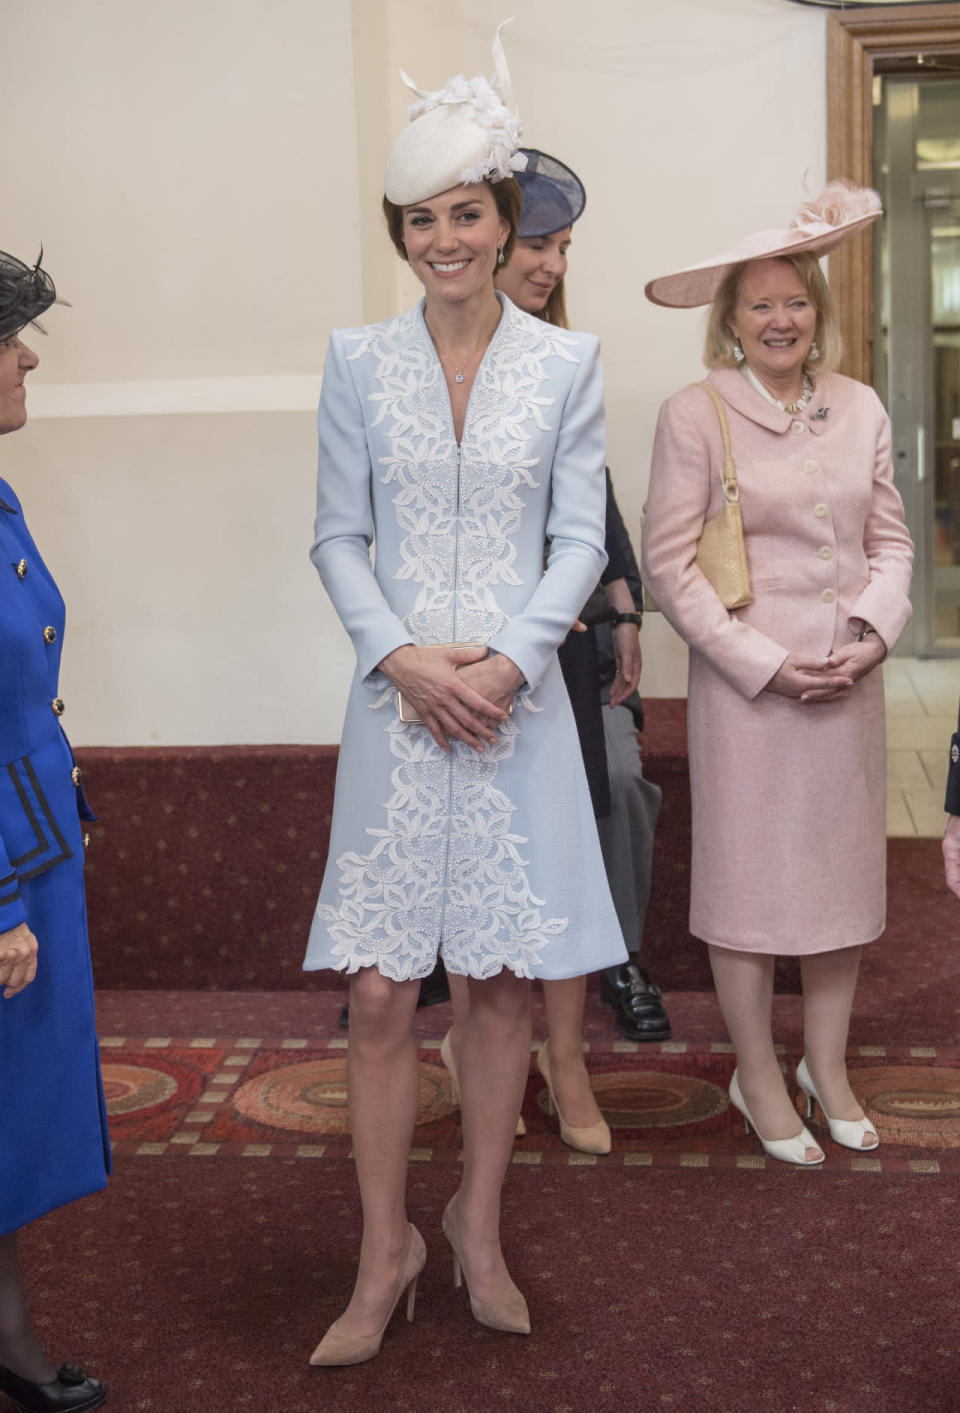 <p>Another outfit from the Queen's 90th birthday: this one featured a pale blue coat dress with lace detailing by Catherine Walker along with Kate's go-to L.K. Bennett box clutch and suede Gianvito Rossi heels.</p><p><i>[Photo: PA]</i></p>